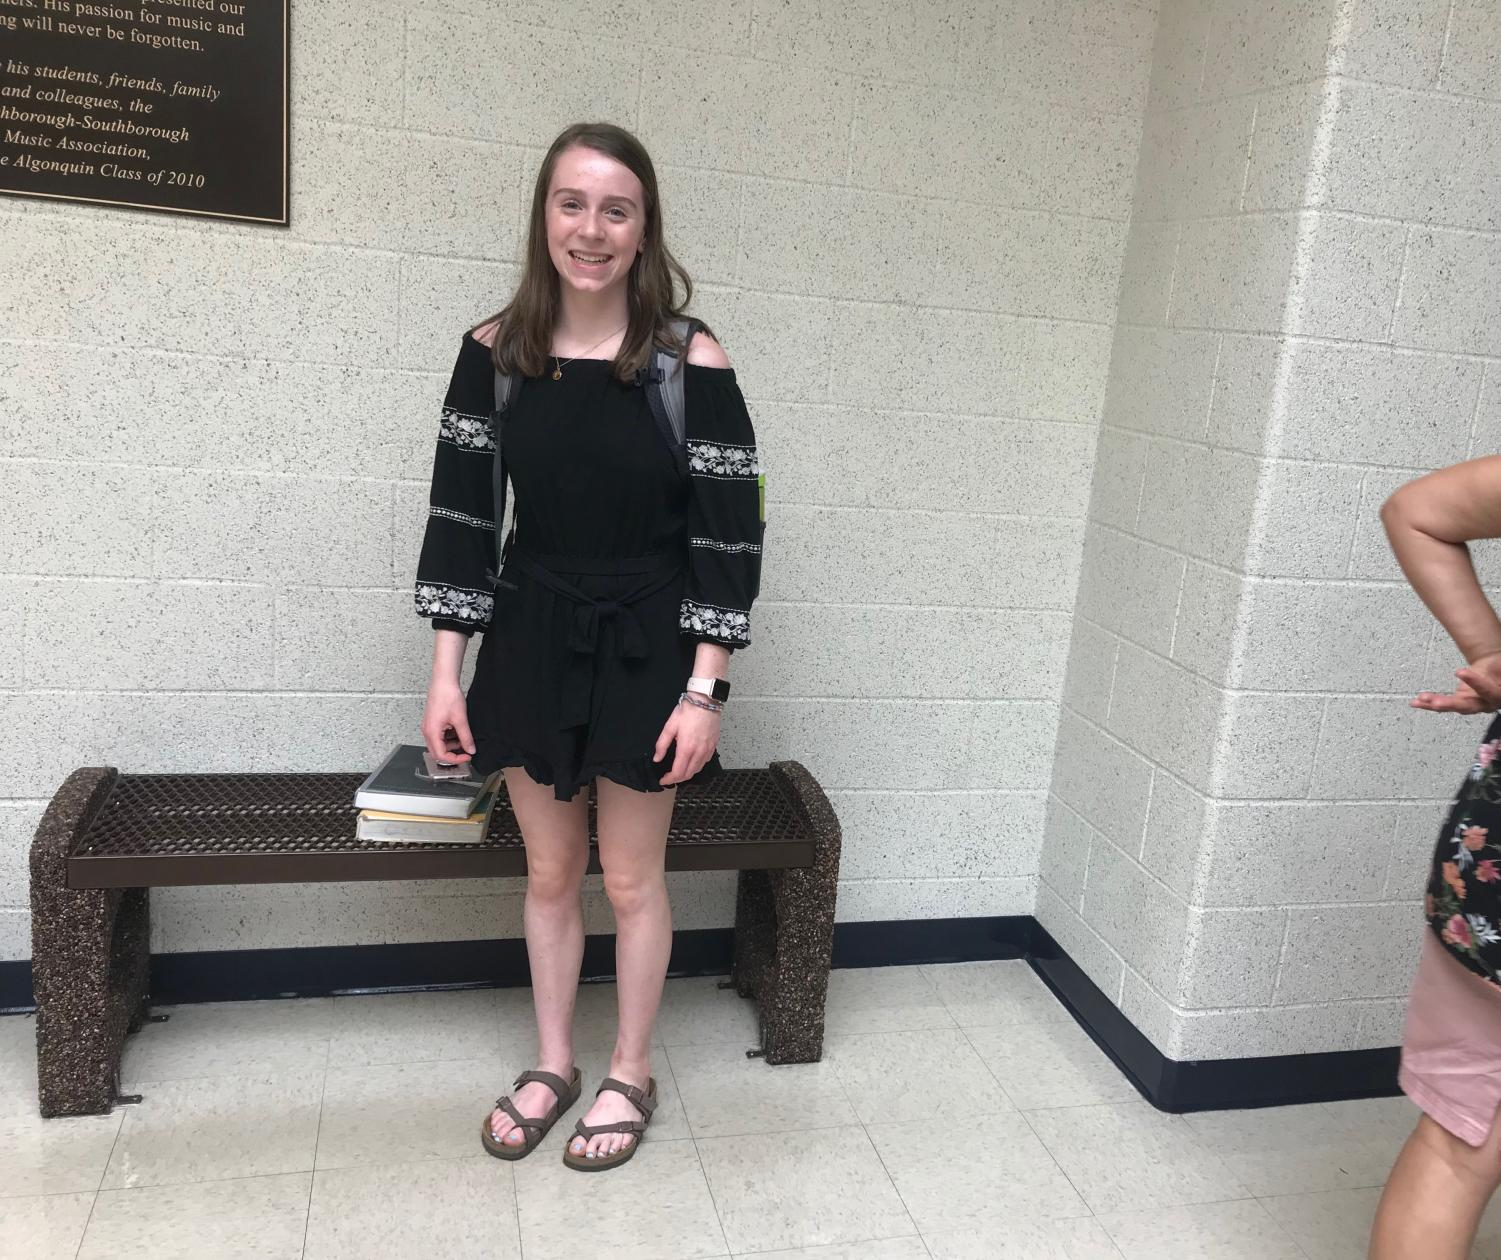 Having+gotten+through+the+first+day+of+school%2C+Junior+Elizabeth+Shaw+smiles+while+showing+off+her+trendy+black+romper+and+Birkenstock+sandals.